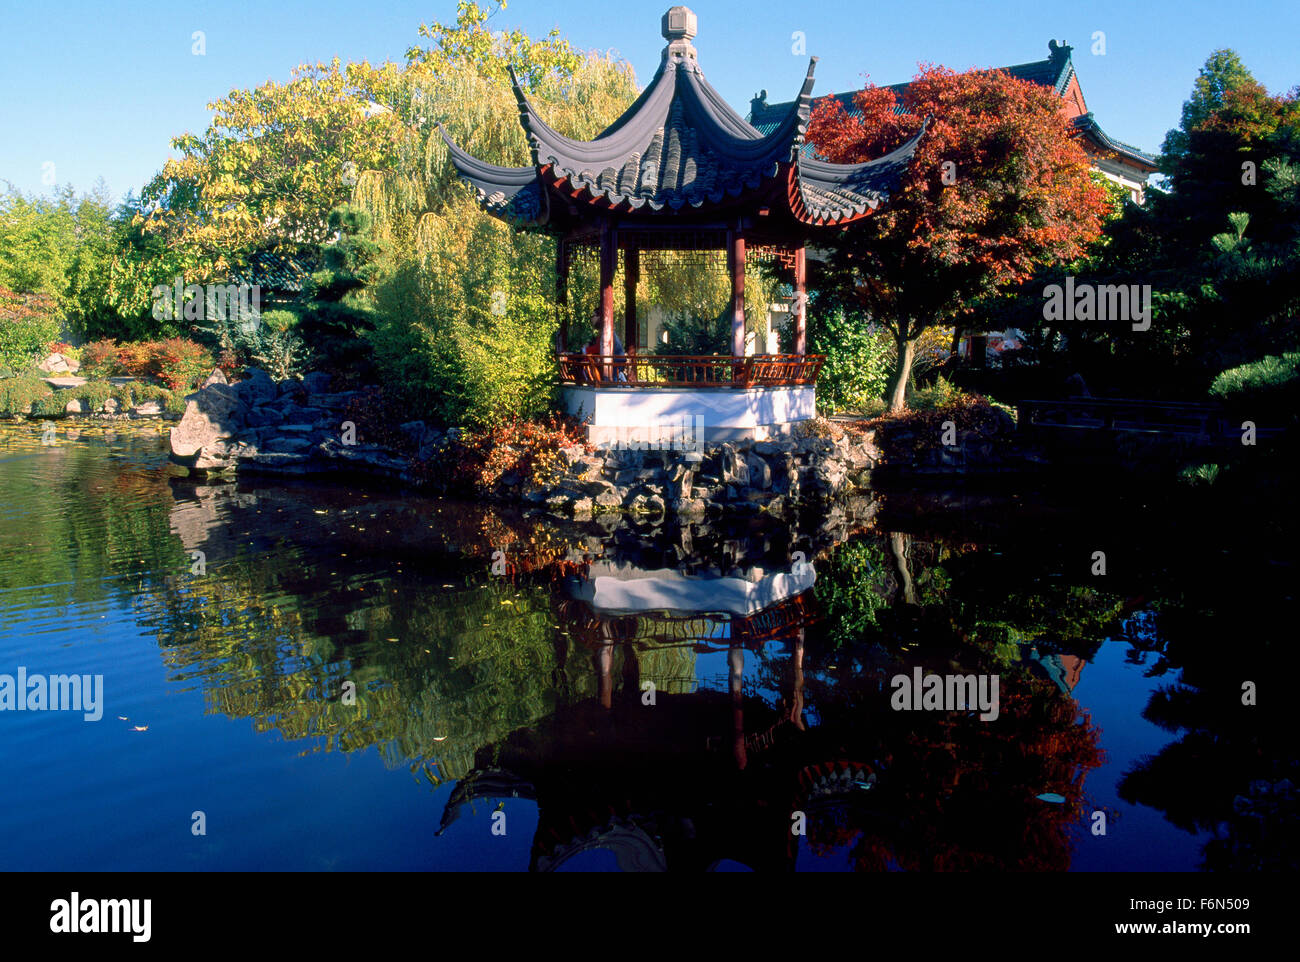 Dr. Sun Yat Sen Classical Chinese Garden In Chinatown, Vancouver, BC,  British Columbia, Canada   Chinese Pagoda